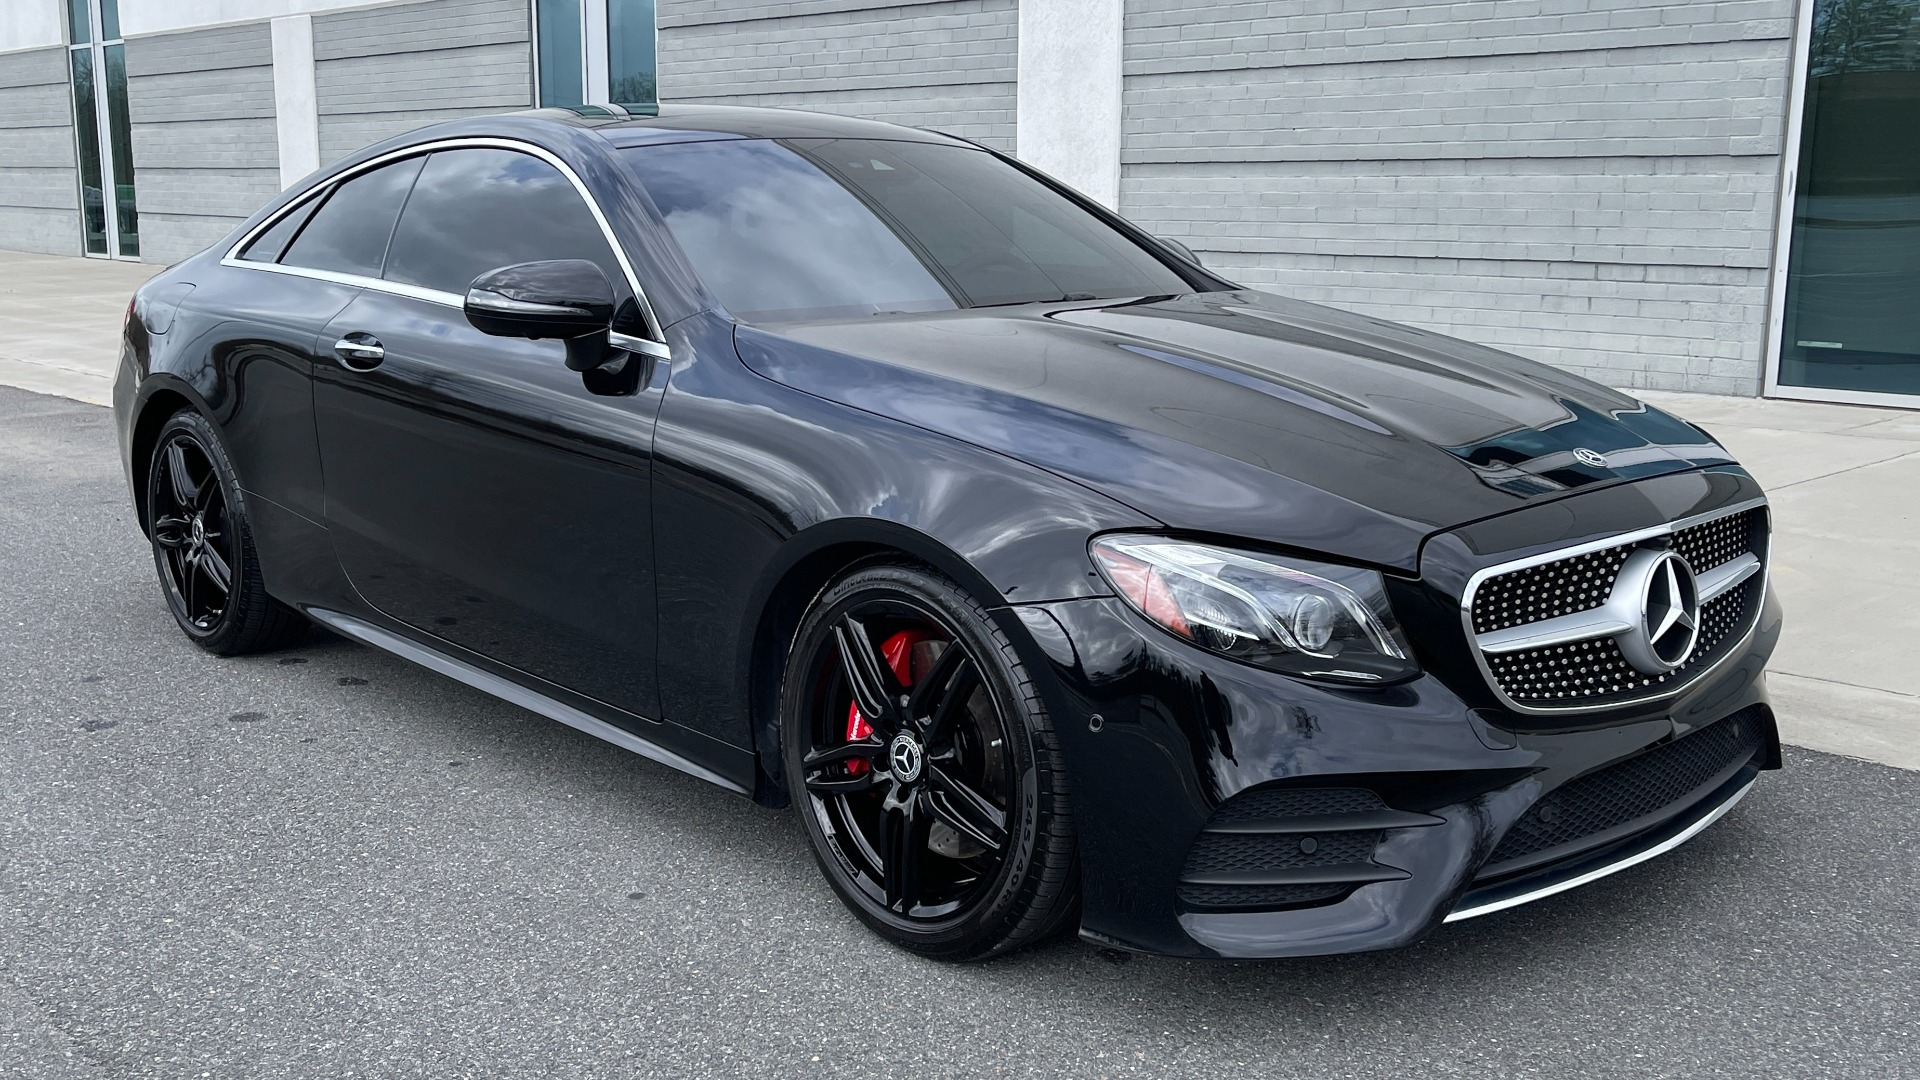 Used 2019 Mercedes-Benz E-CLASS E 450 PREMIUM / AMG LINE / PARK ASST / BSA / BURMESTER for sale $49,995 at Formula Imports in Charlotte NC 28227 5